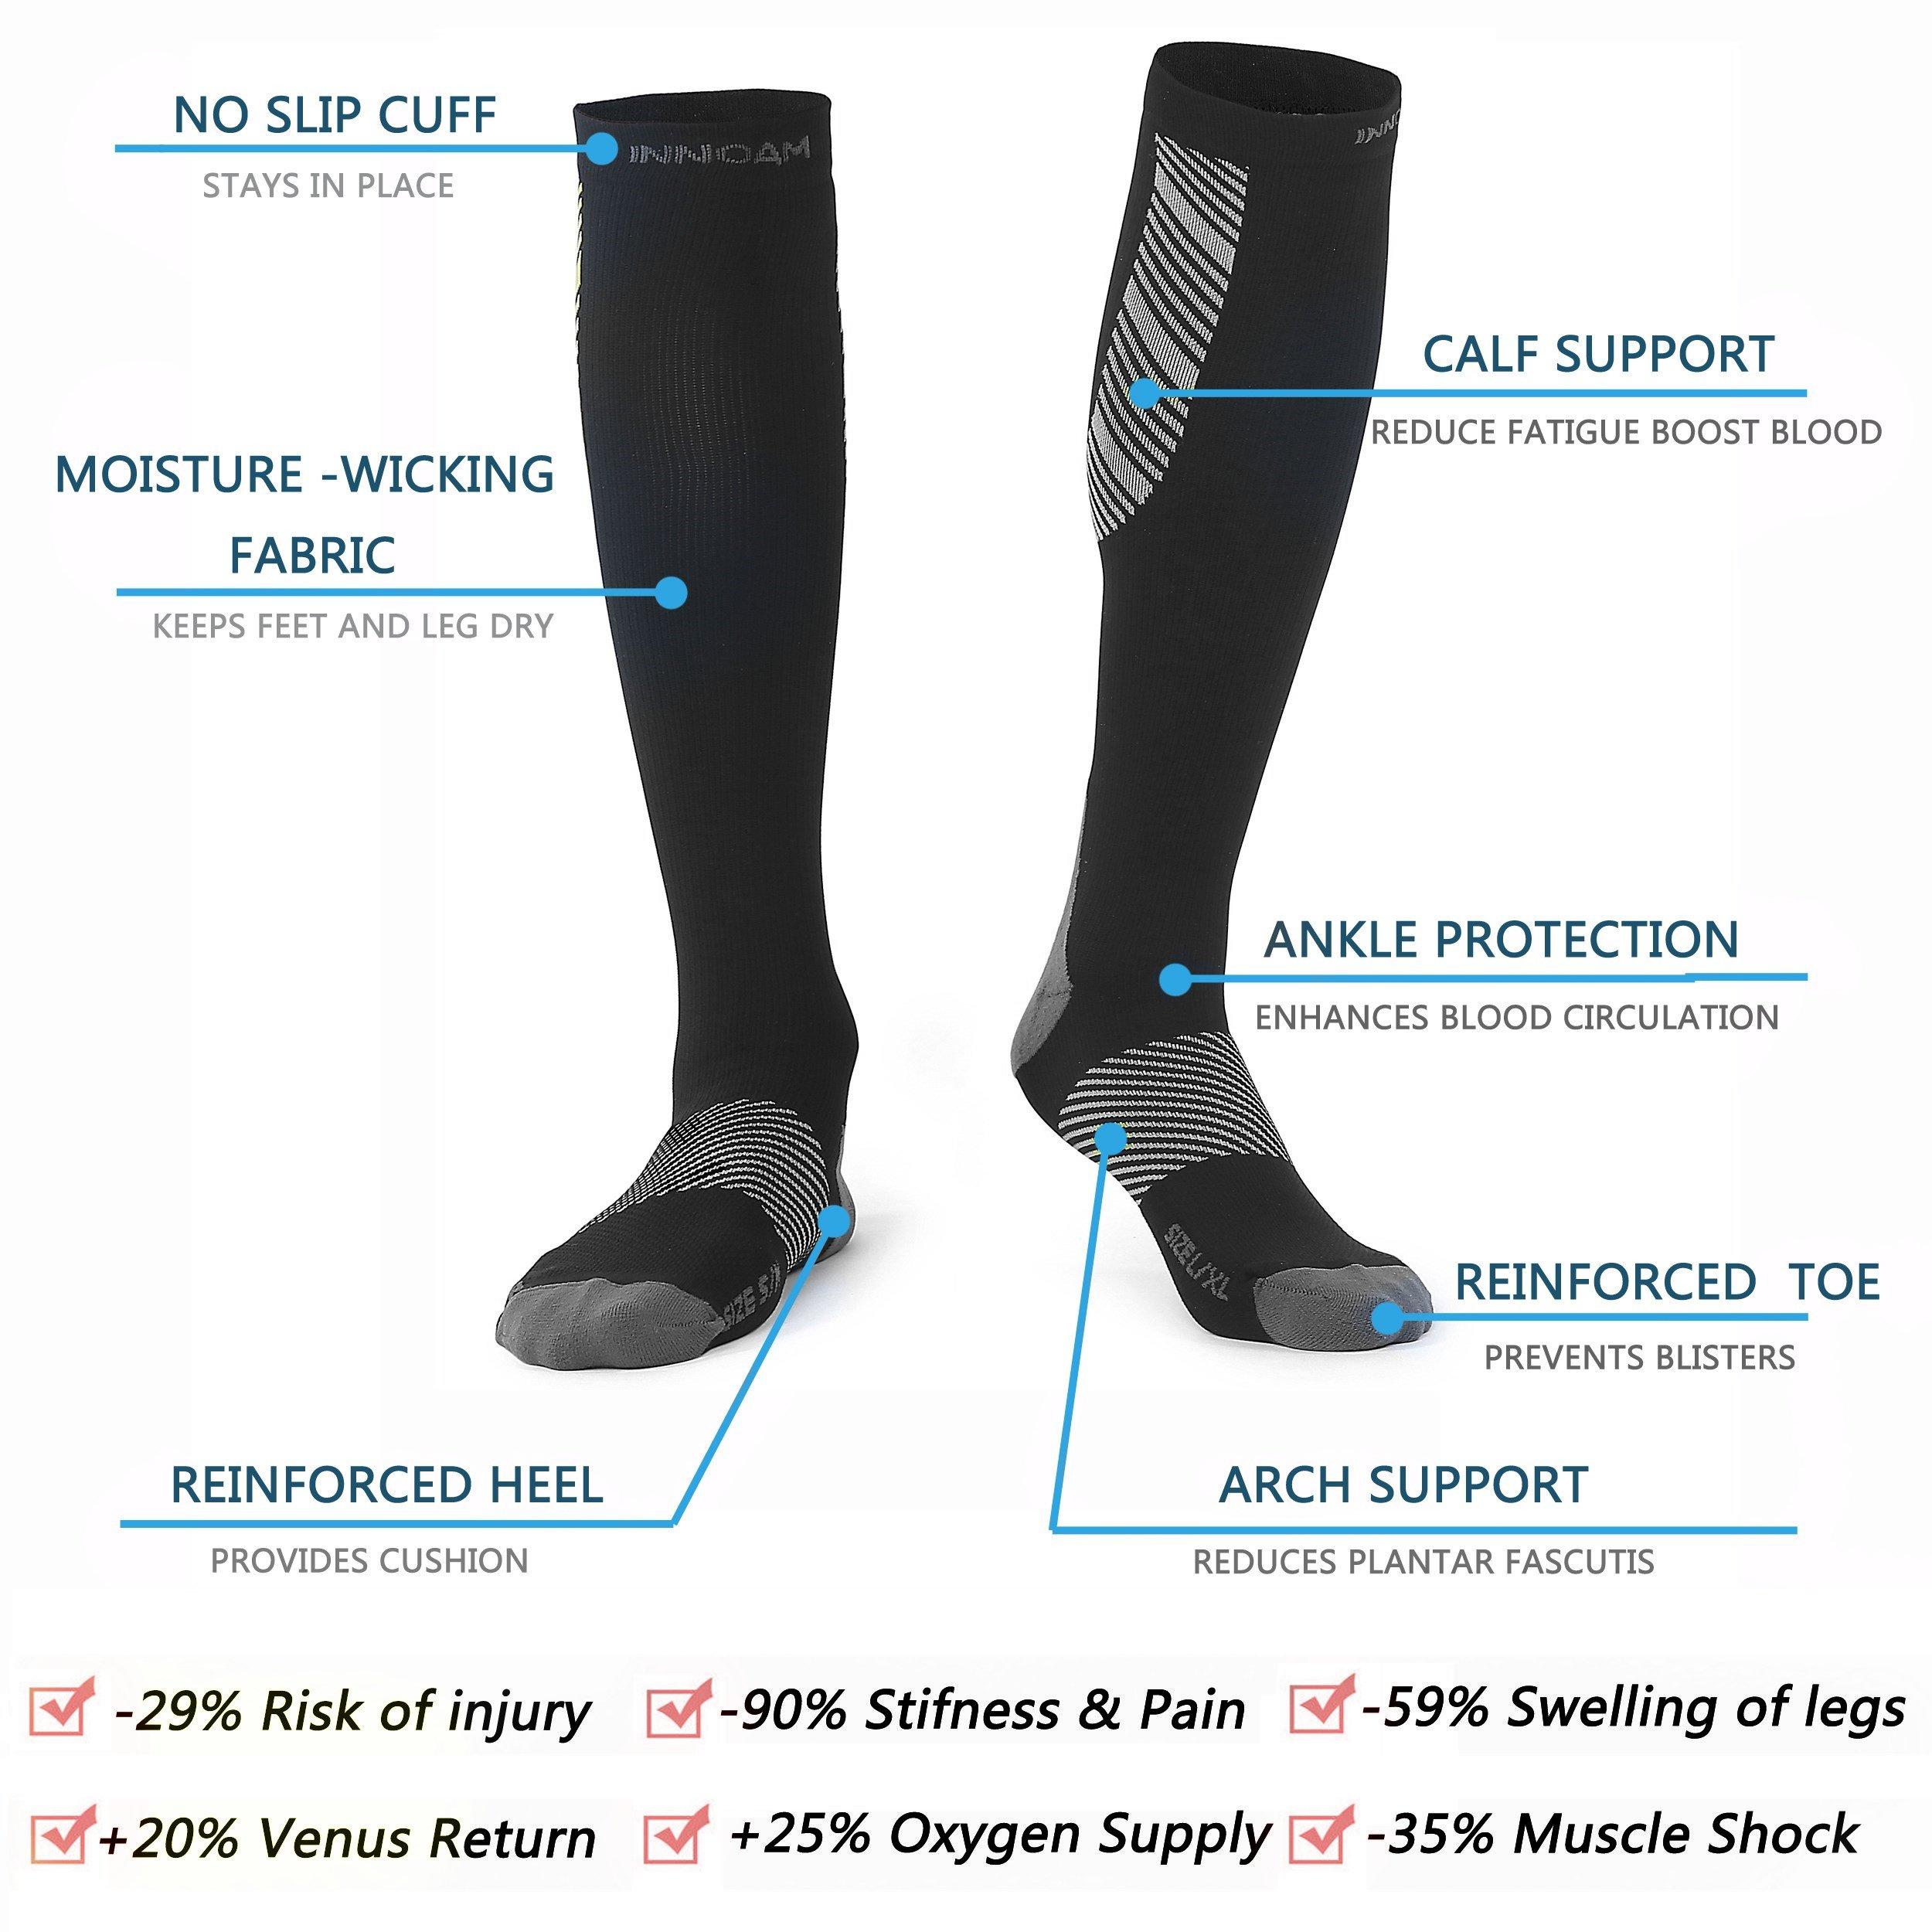 Compression Socks for Men & Women Best Stockings for Nurses, Workout, Running, Medical, Athletic, Edema, Diabetic, Pregnancy, Travel, Varicose Veins, Reduce Swelling, 20-30mmHg (Black Gray, 2XL/3XL) by Innoam (Image #3)